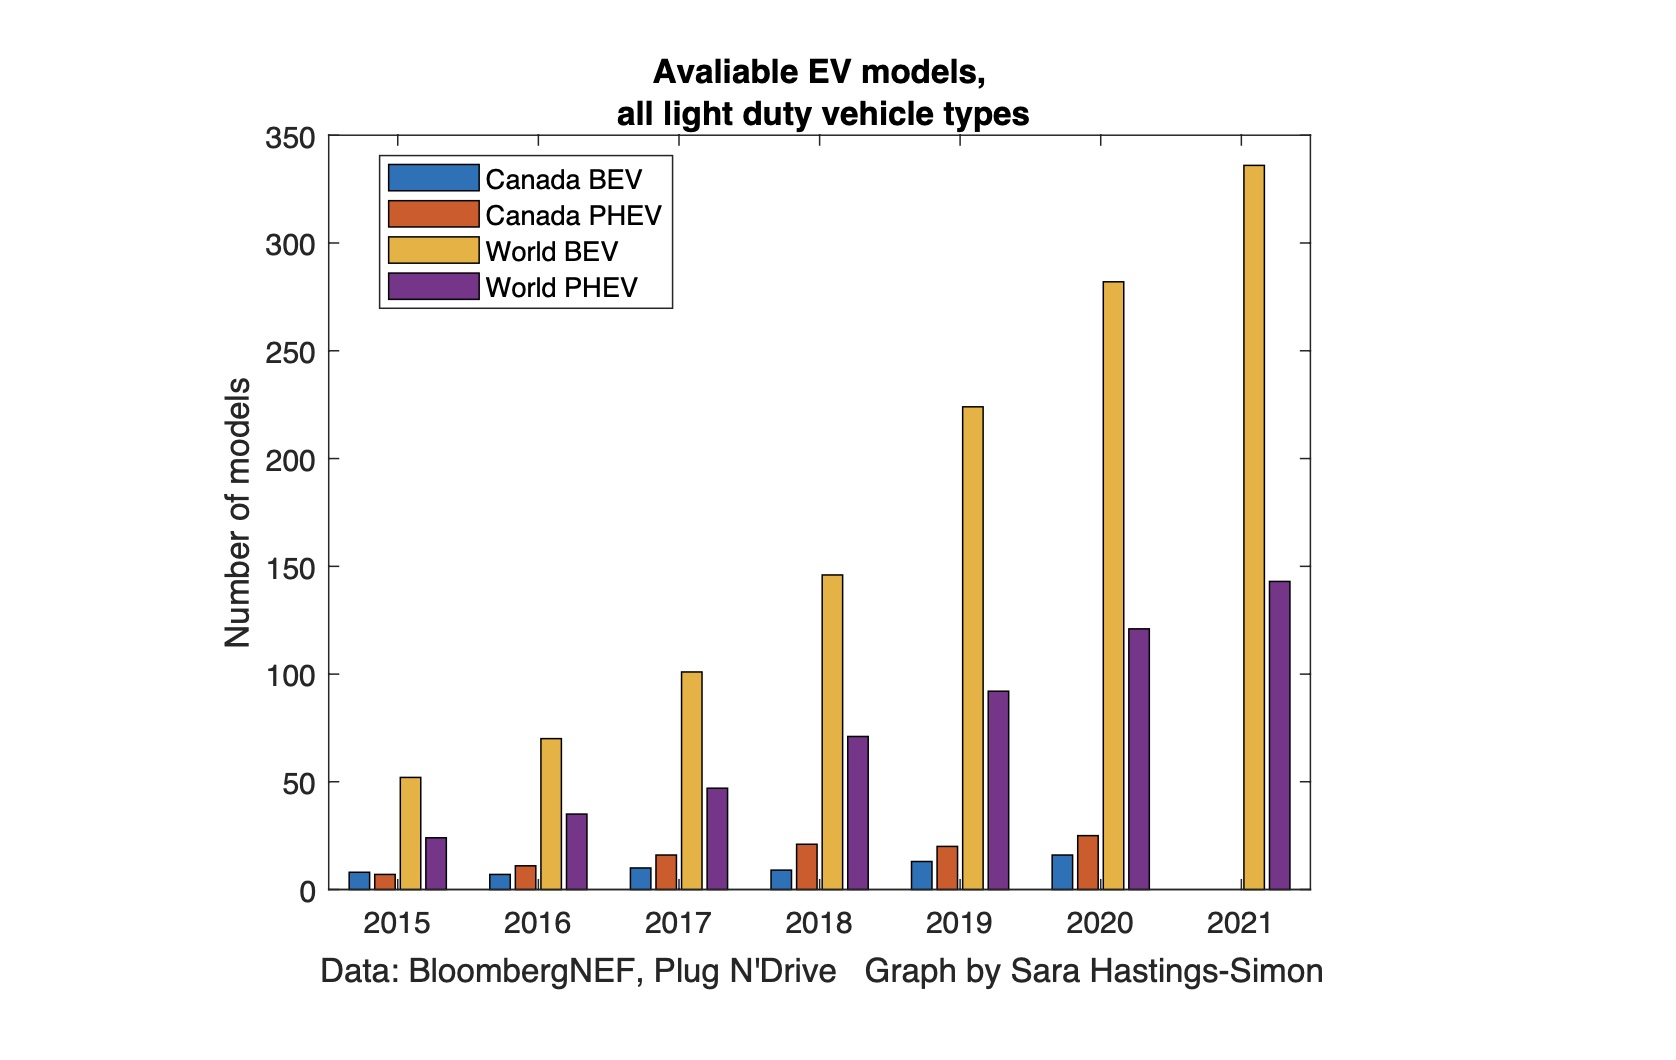 Chart showing EV model availability across countries